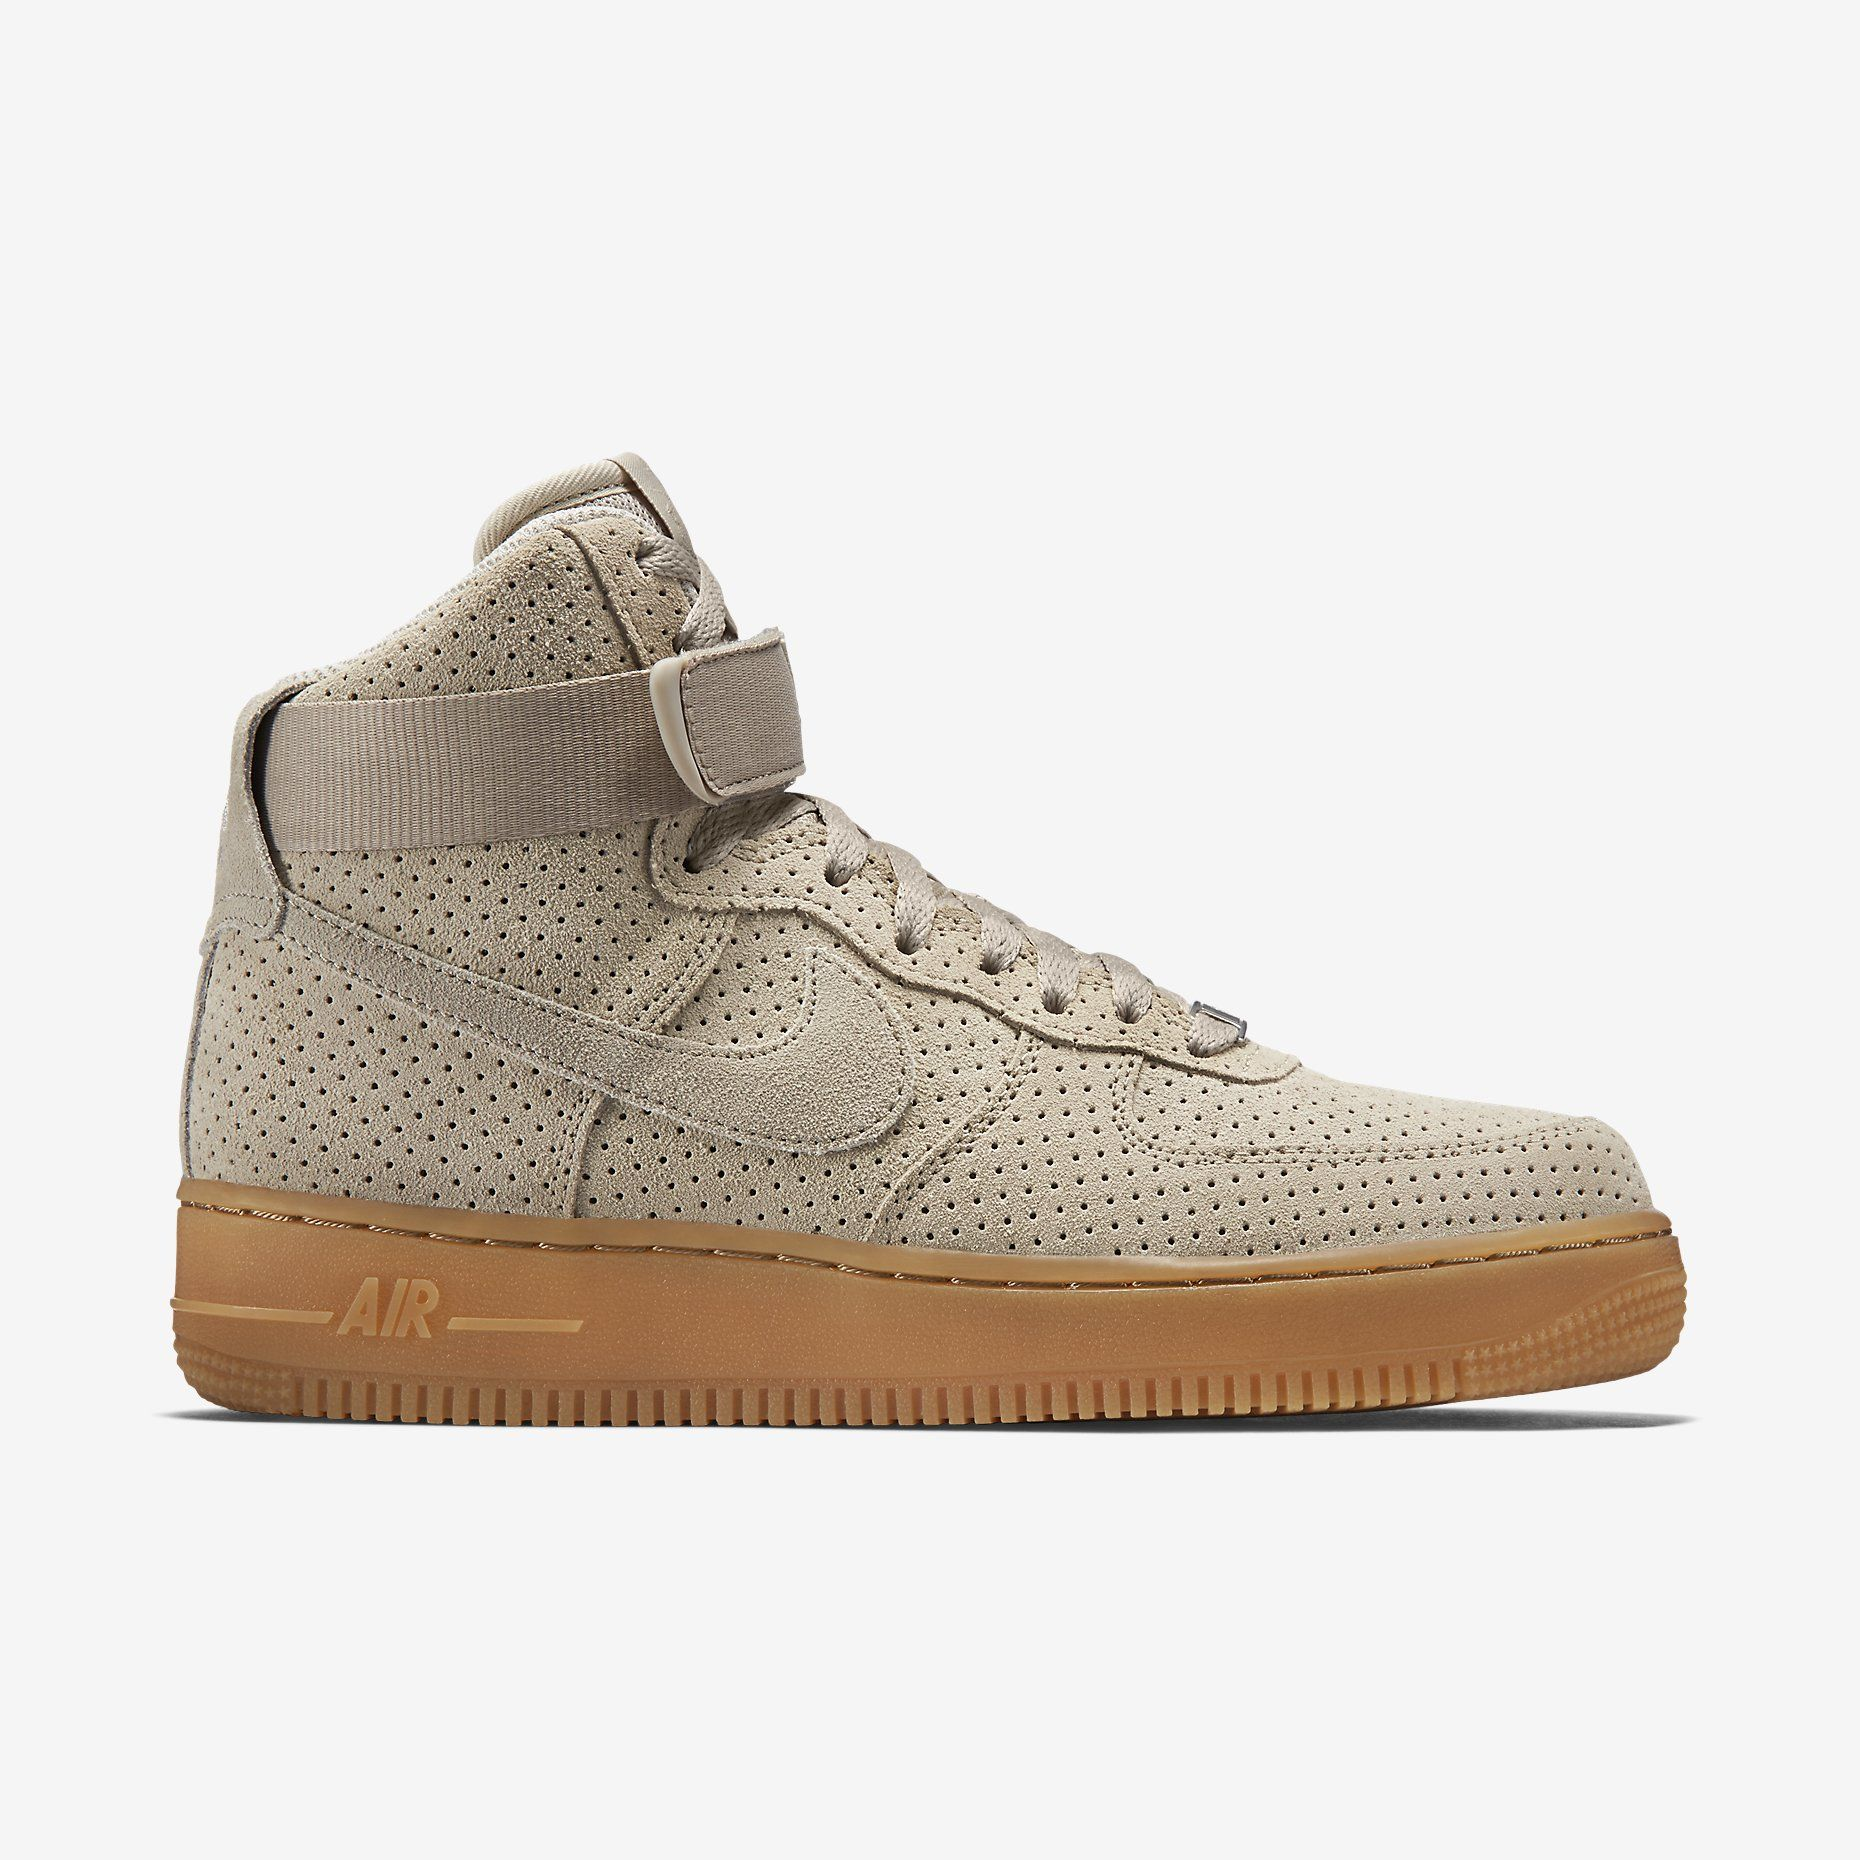 size 40 833a2 db237 Nike Air Force 1 High Suede Women s Shoe. Nike Store